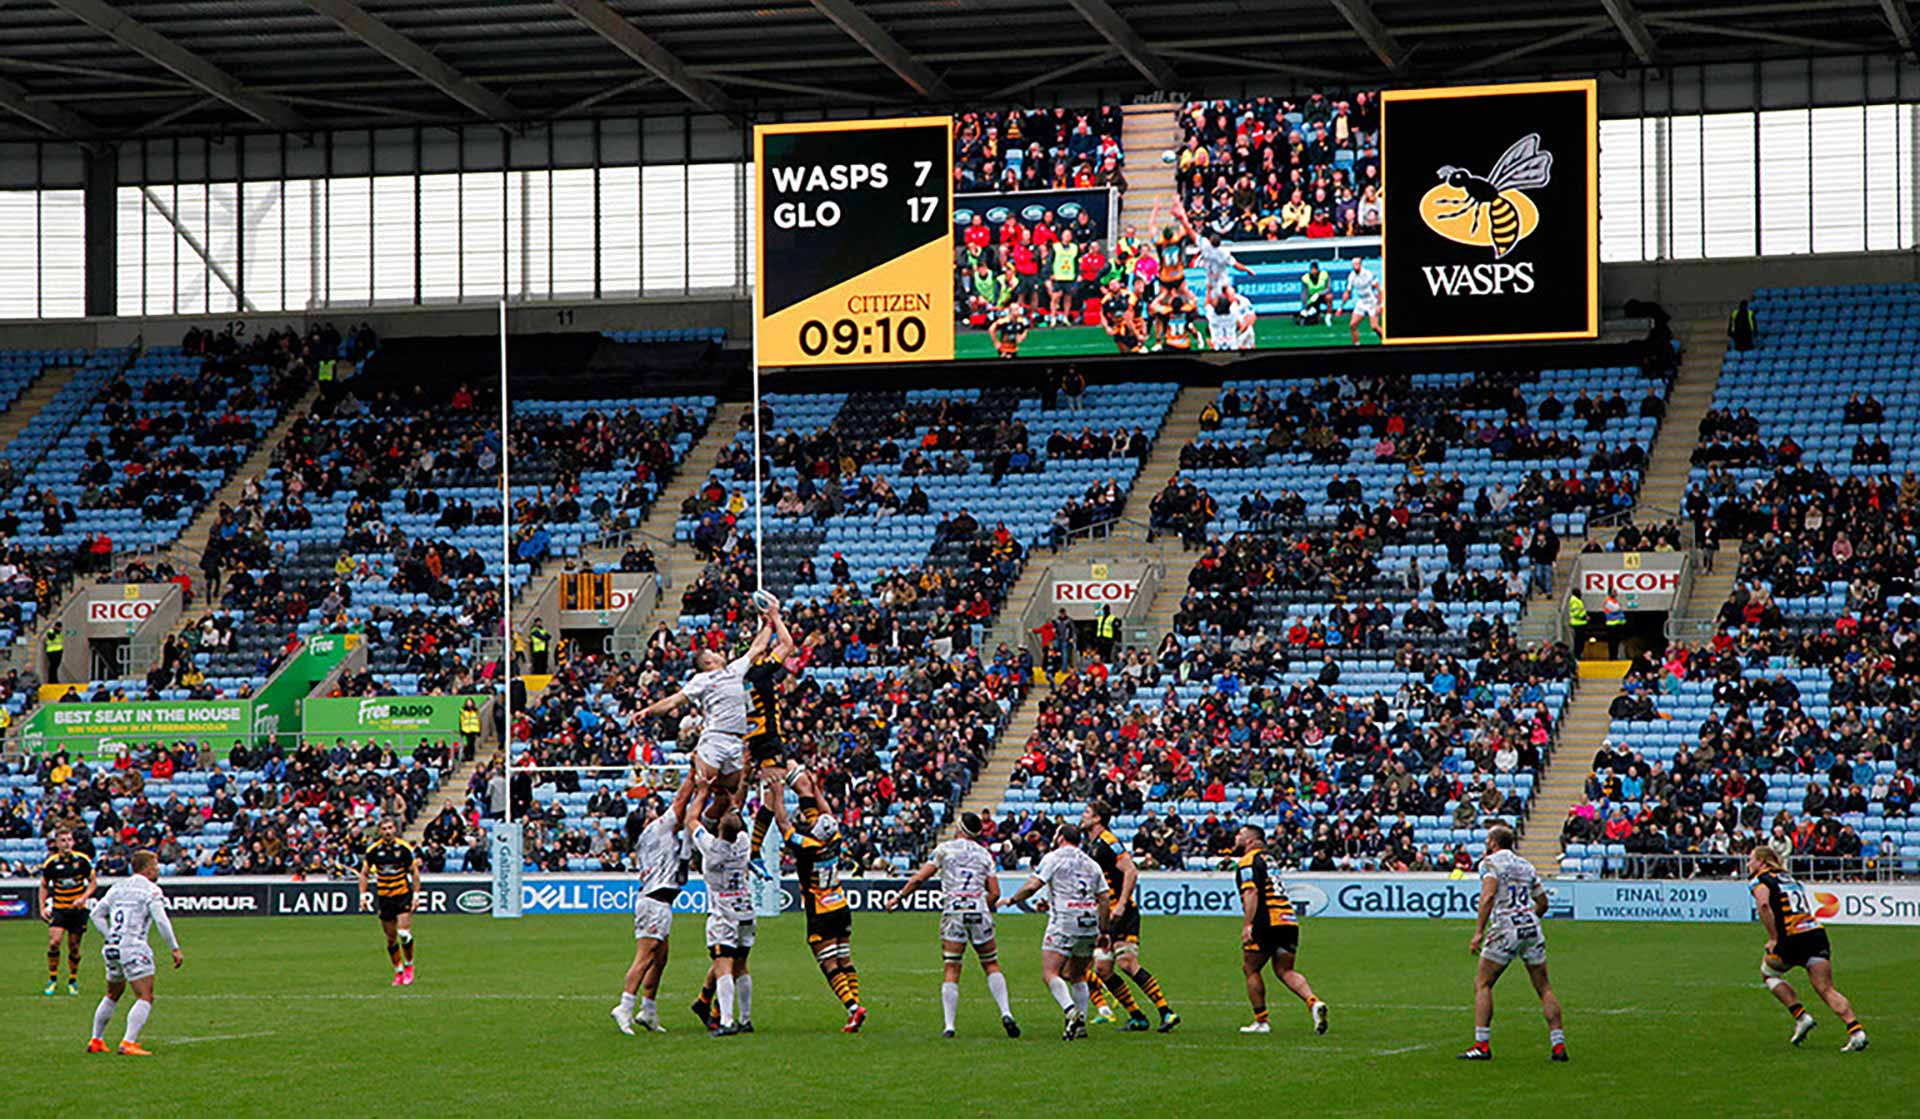 Wasps Rugby Ricoh Stadium Big Screen